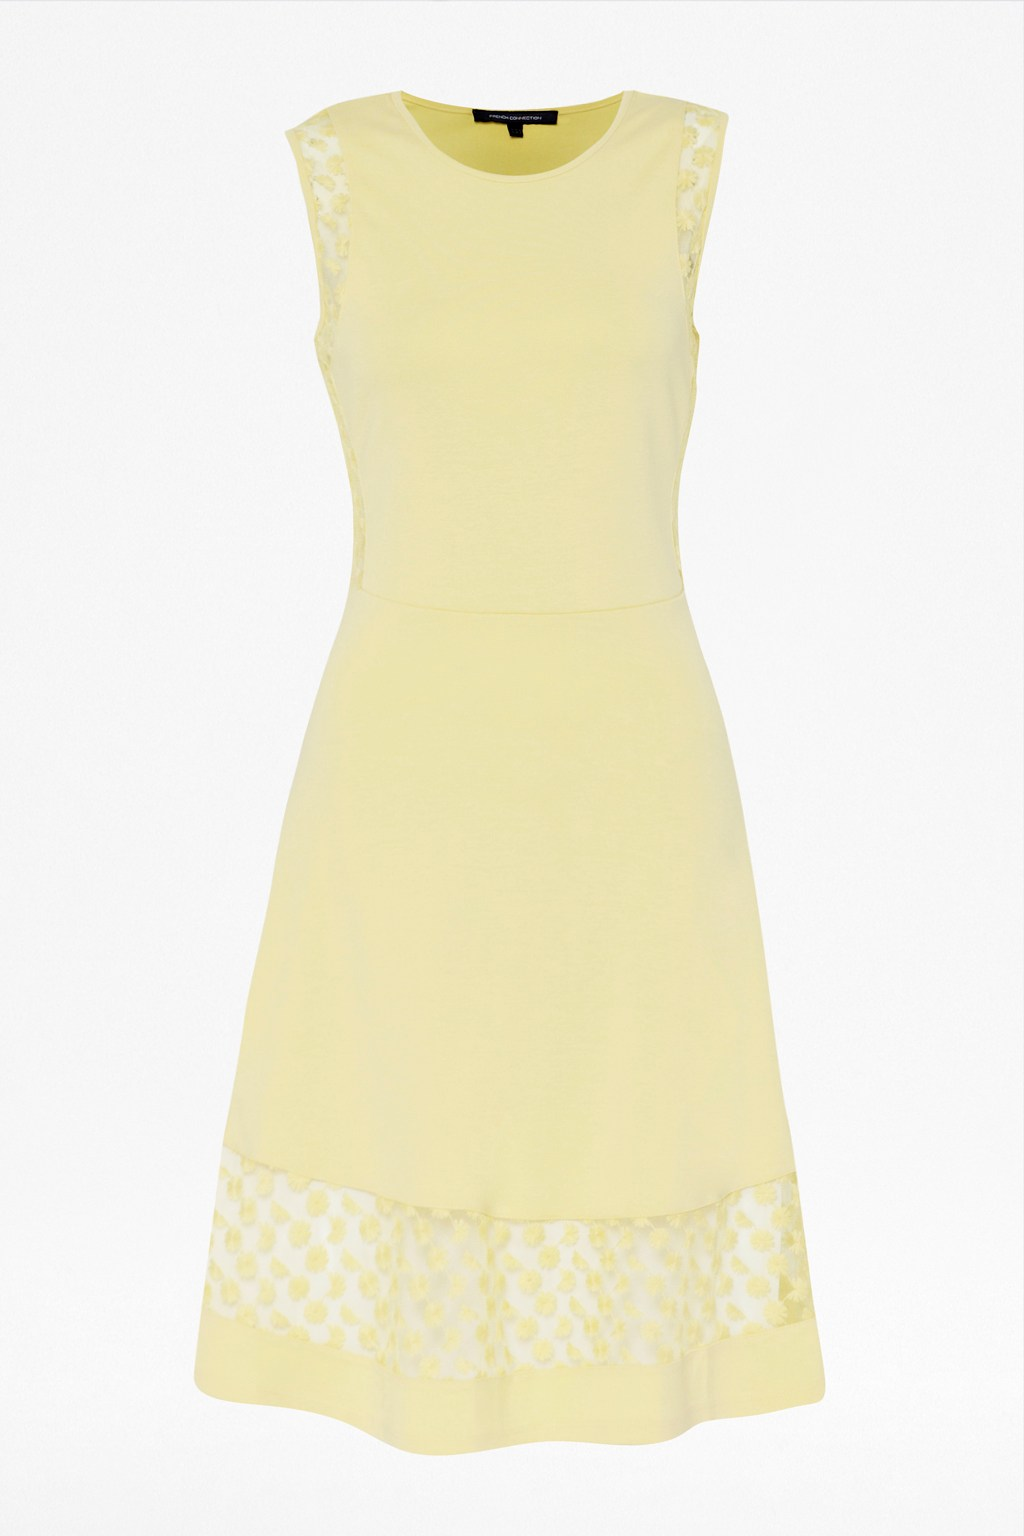 french connection lemon dress